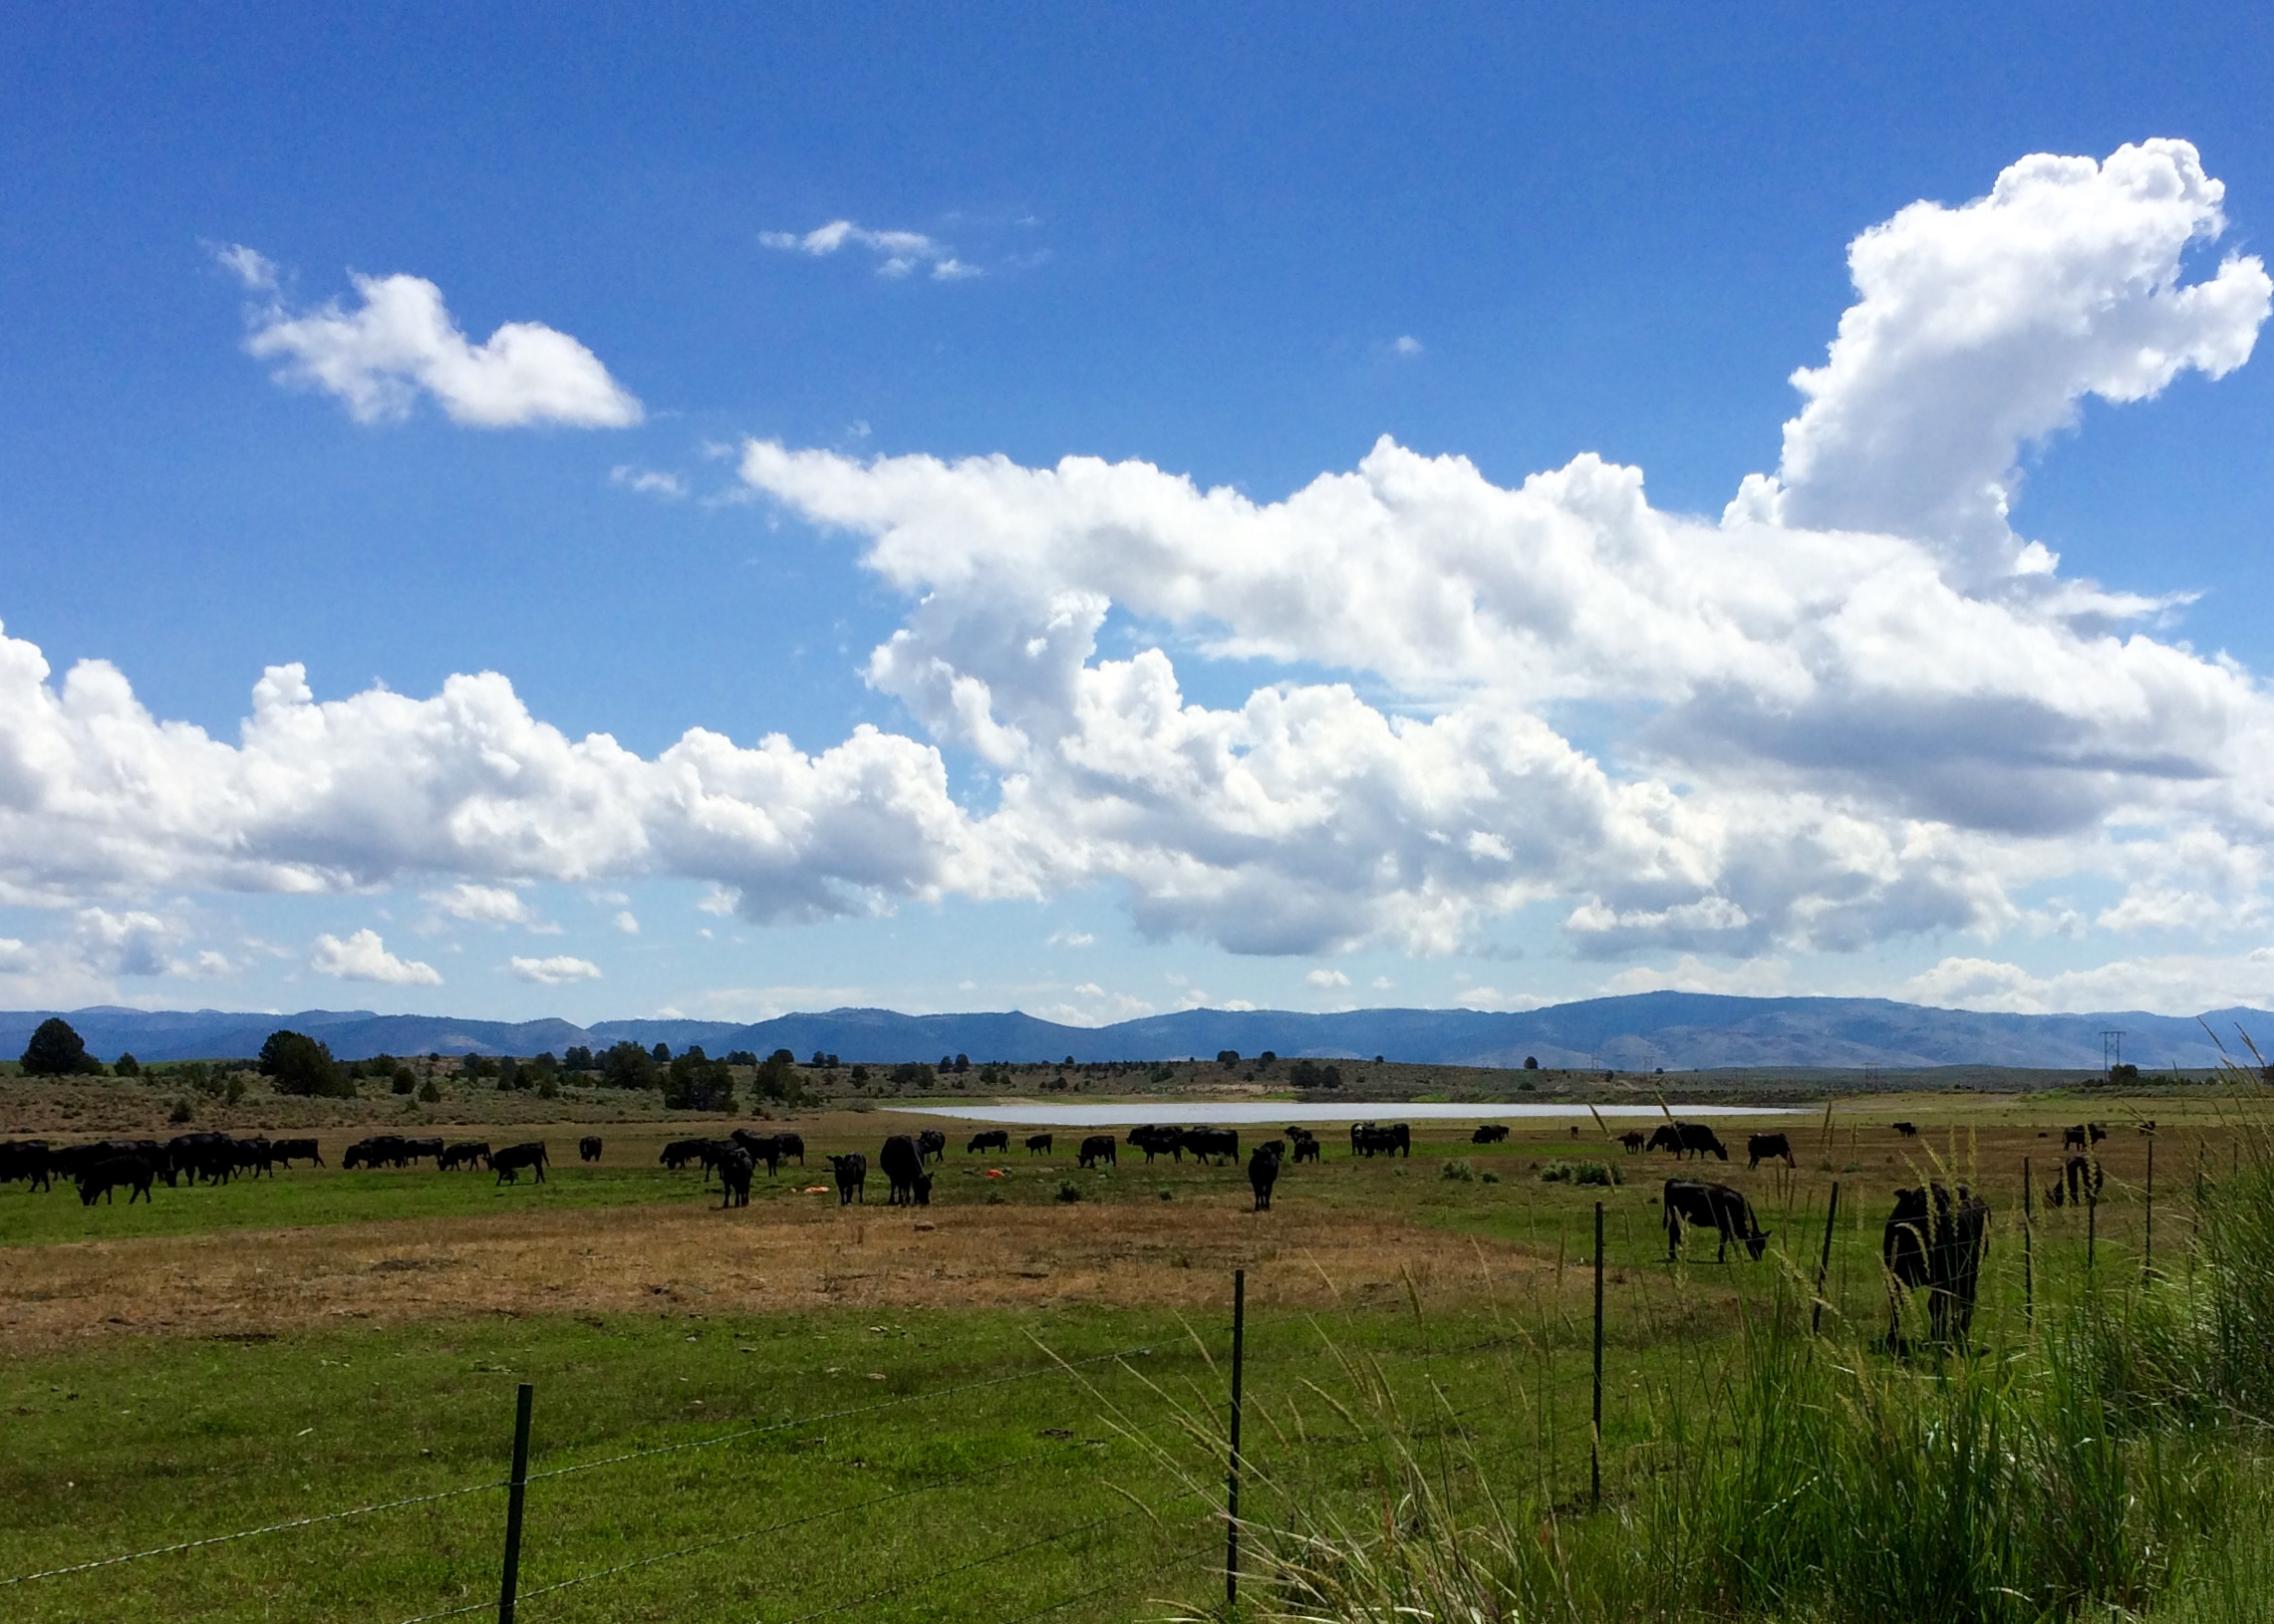 Here's a shot of the ranch from the RV park (behind me). Those black things are future hamburgers.